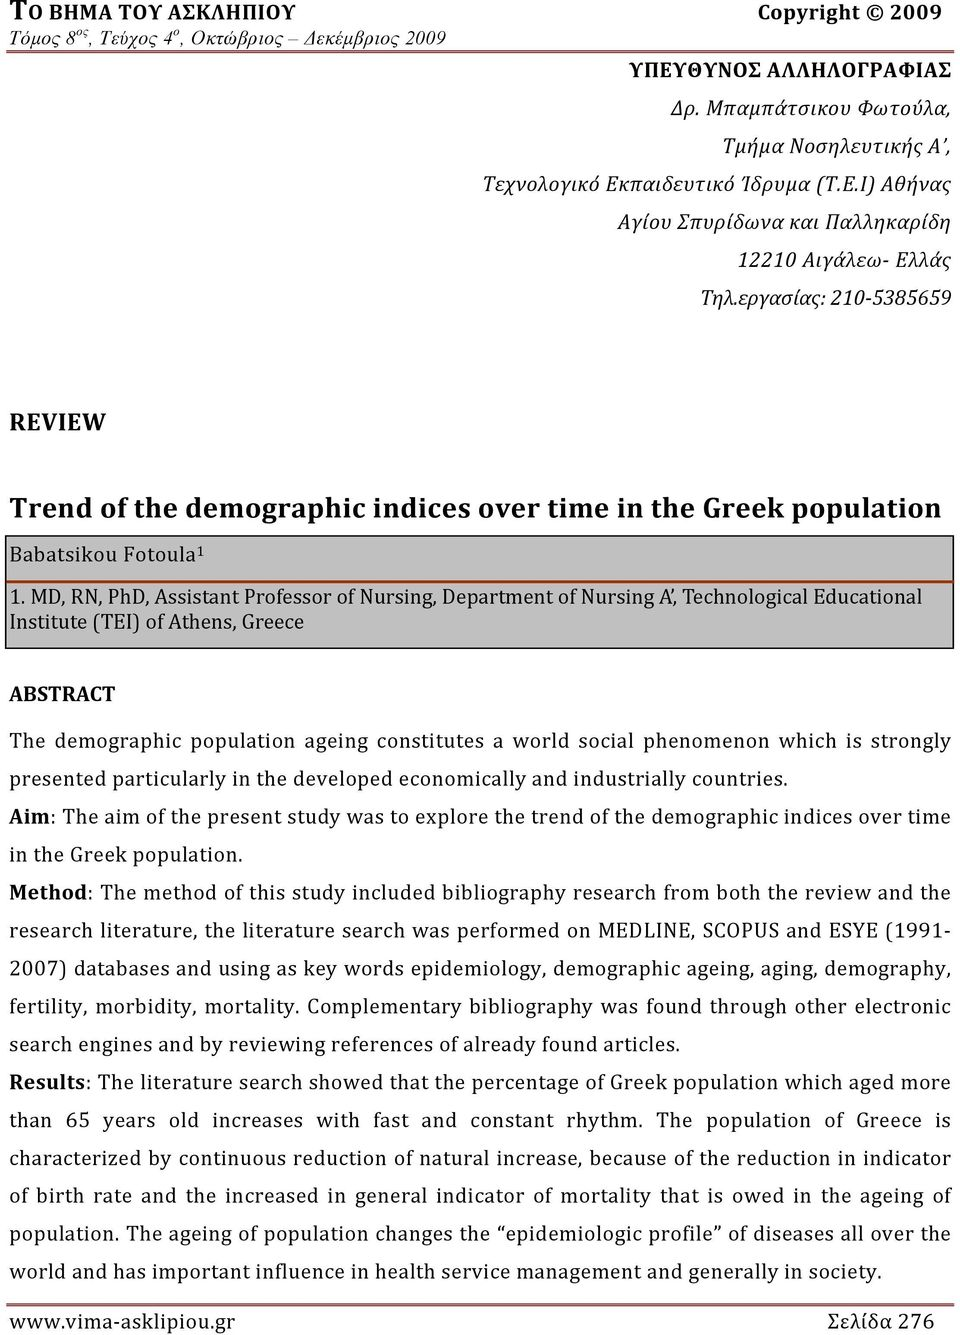 MD, RN, PhD, Assistant Professor of Nursing, Department of Nursing A, Technological Educational Institute (TEI) of Athens, Greece ABSTRACT The demographic population ageing constitutes a world social